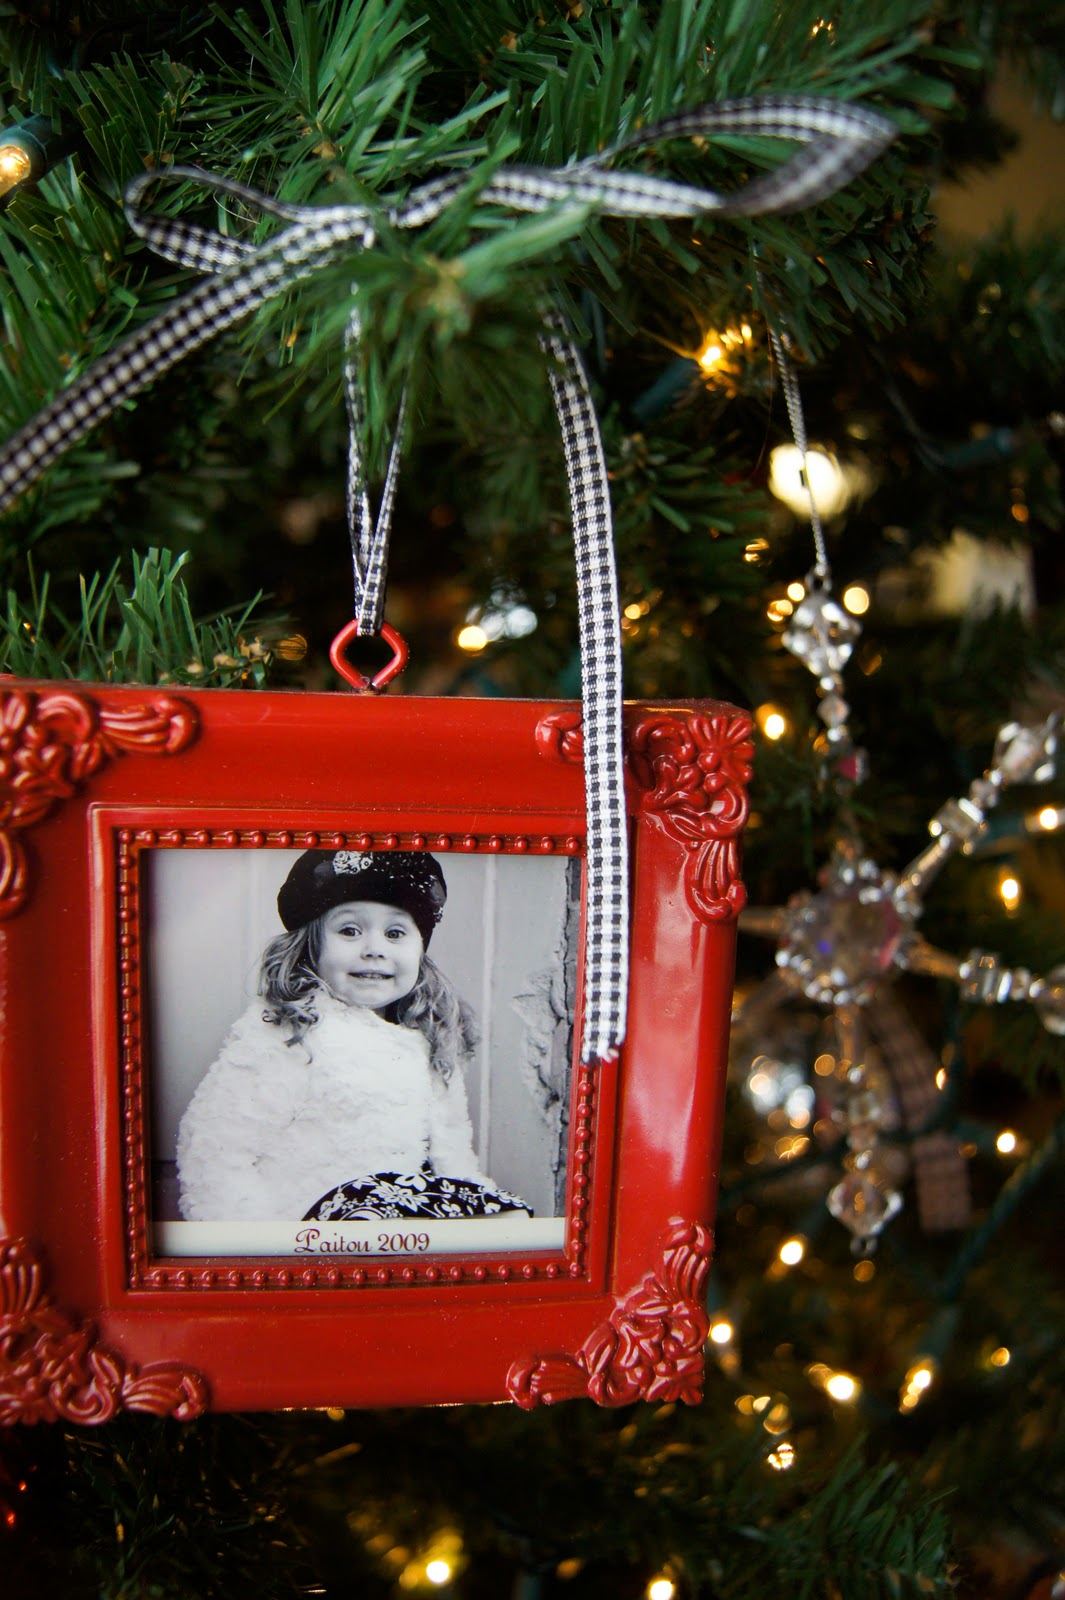 Christmas tree picture frame ornaments - Monday December 12 2011